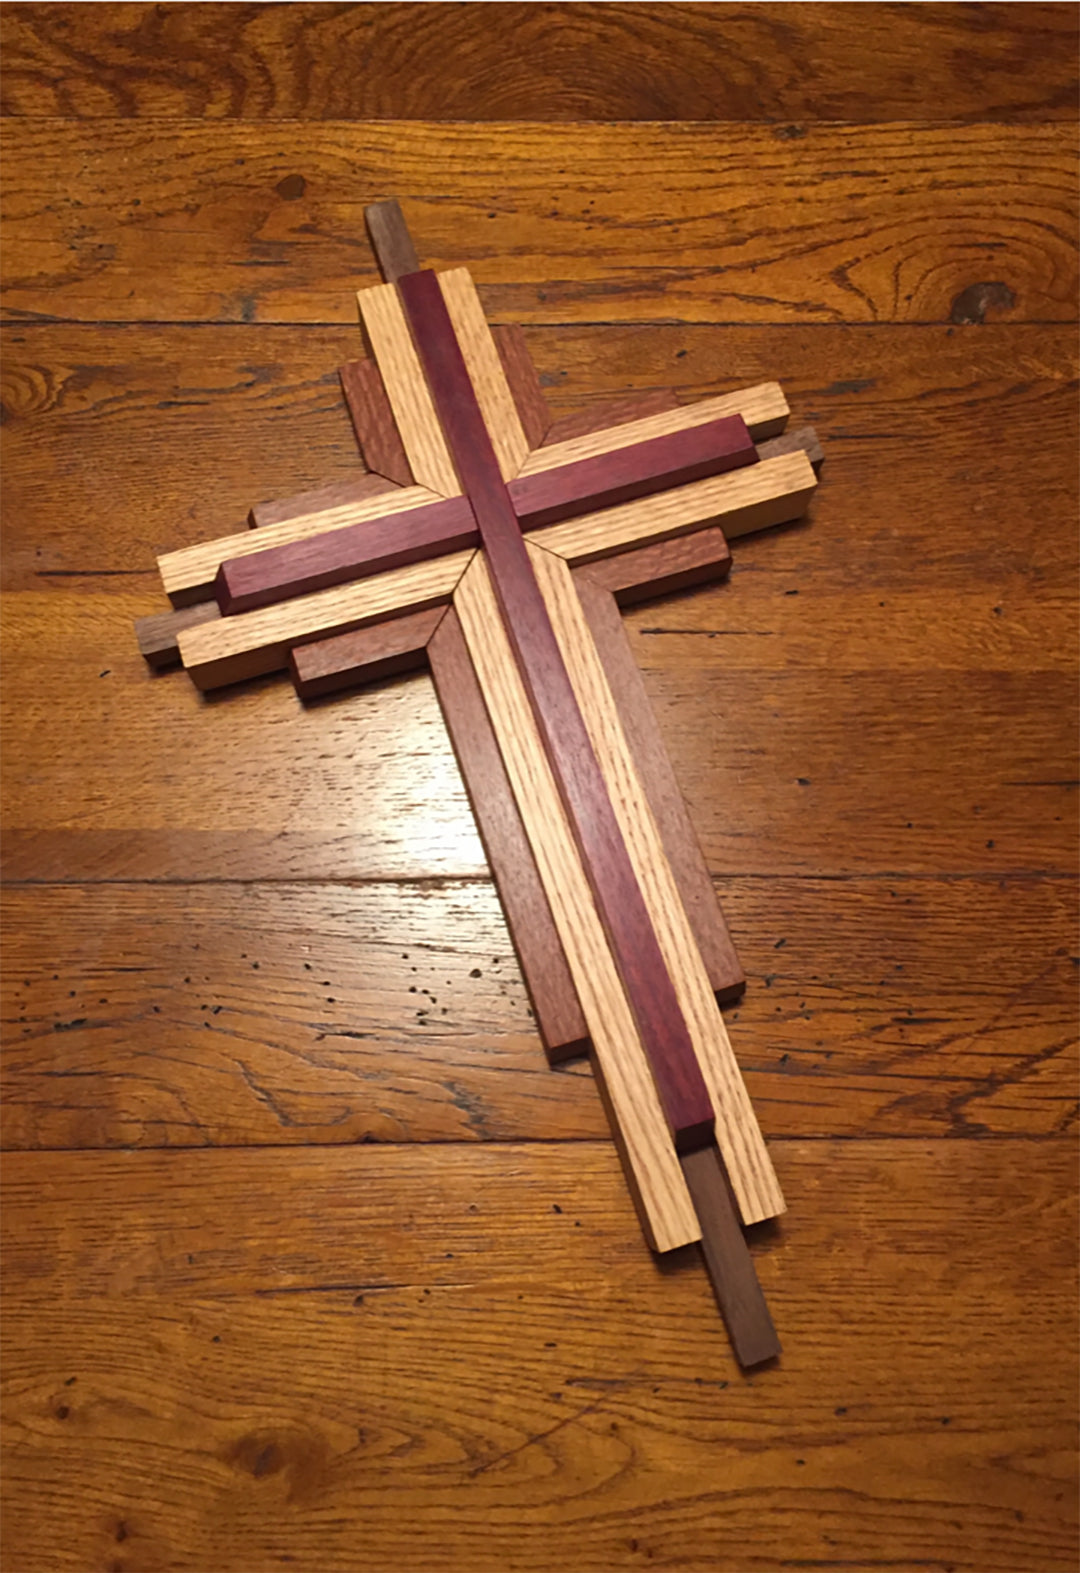 Nine-inch cross from Barry Issbernernch